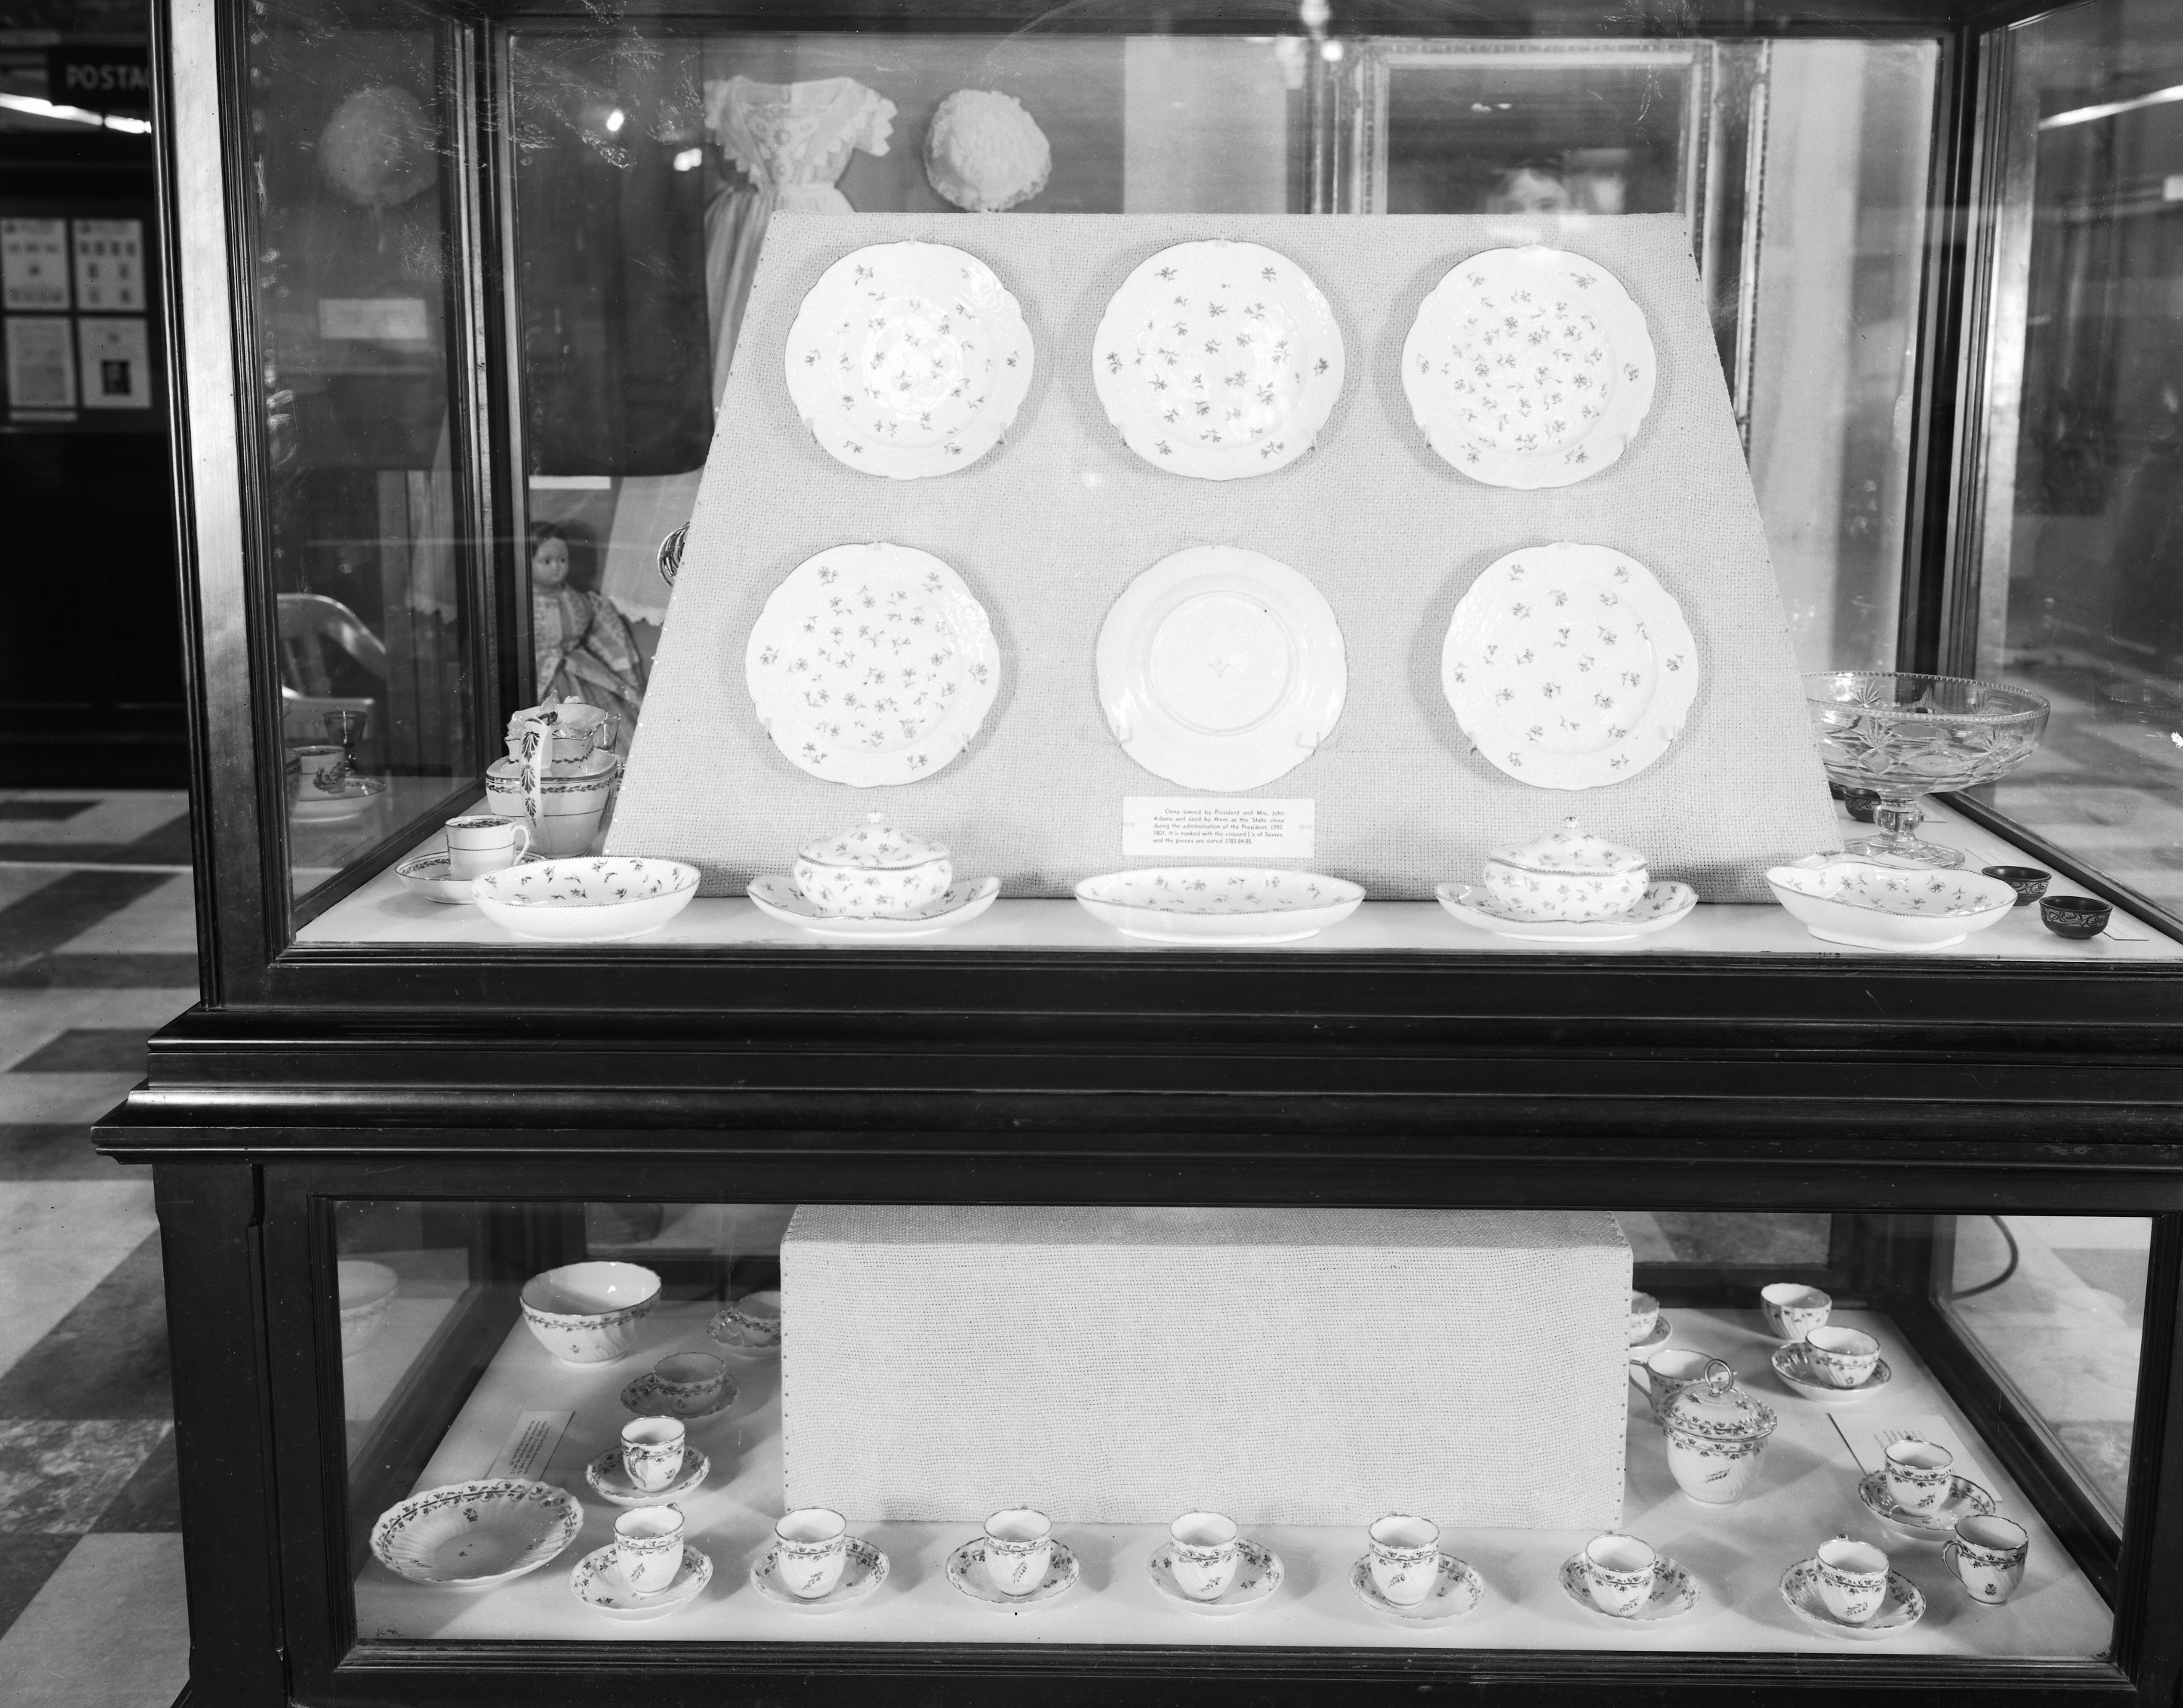 Exhibit case of china and a tea set. The case has upper and lower portions.